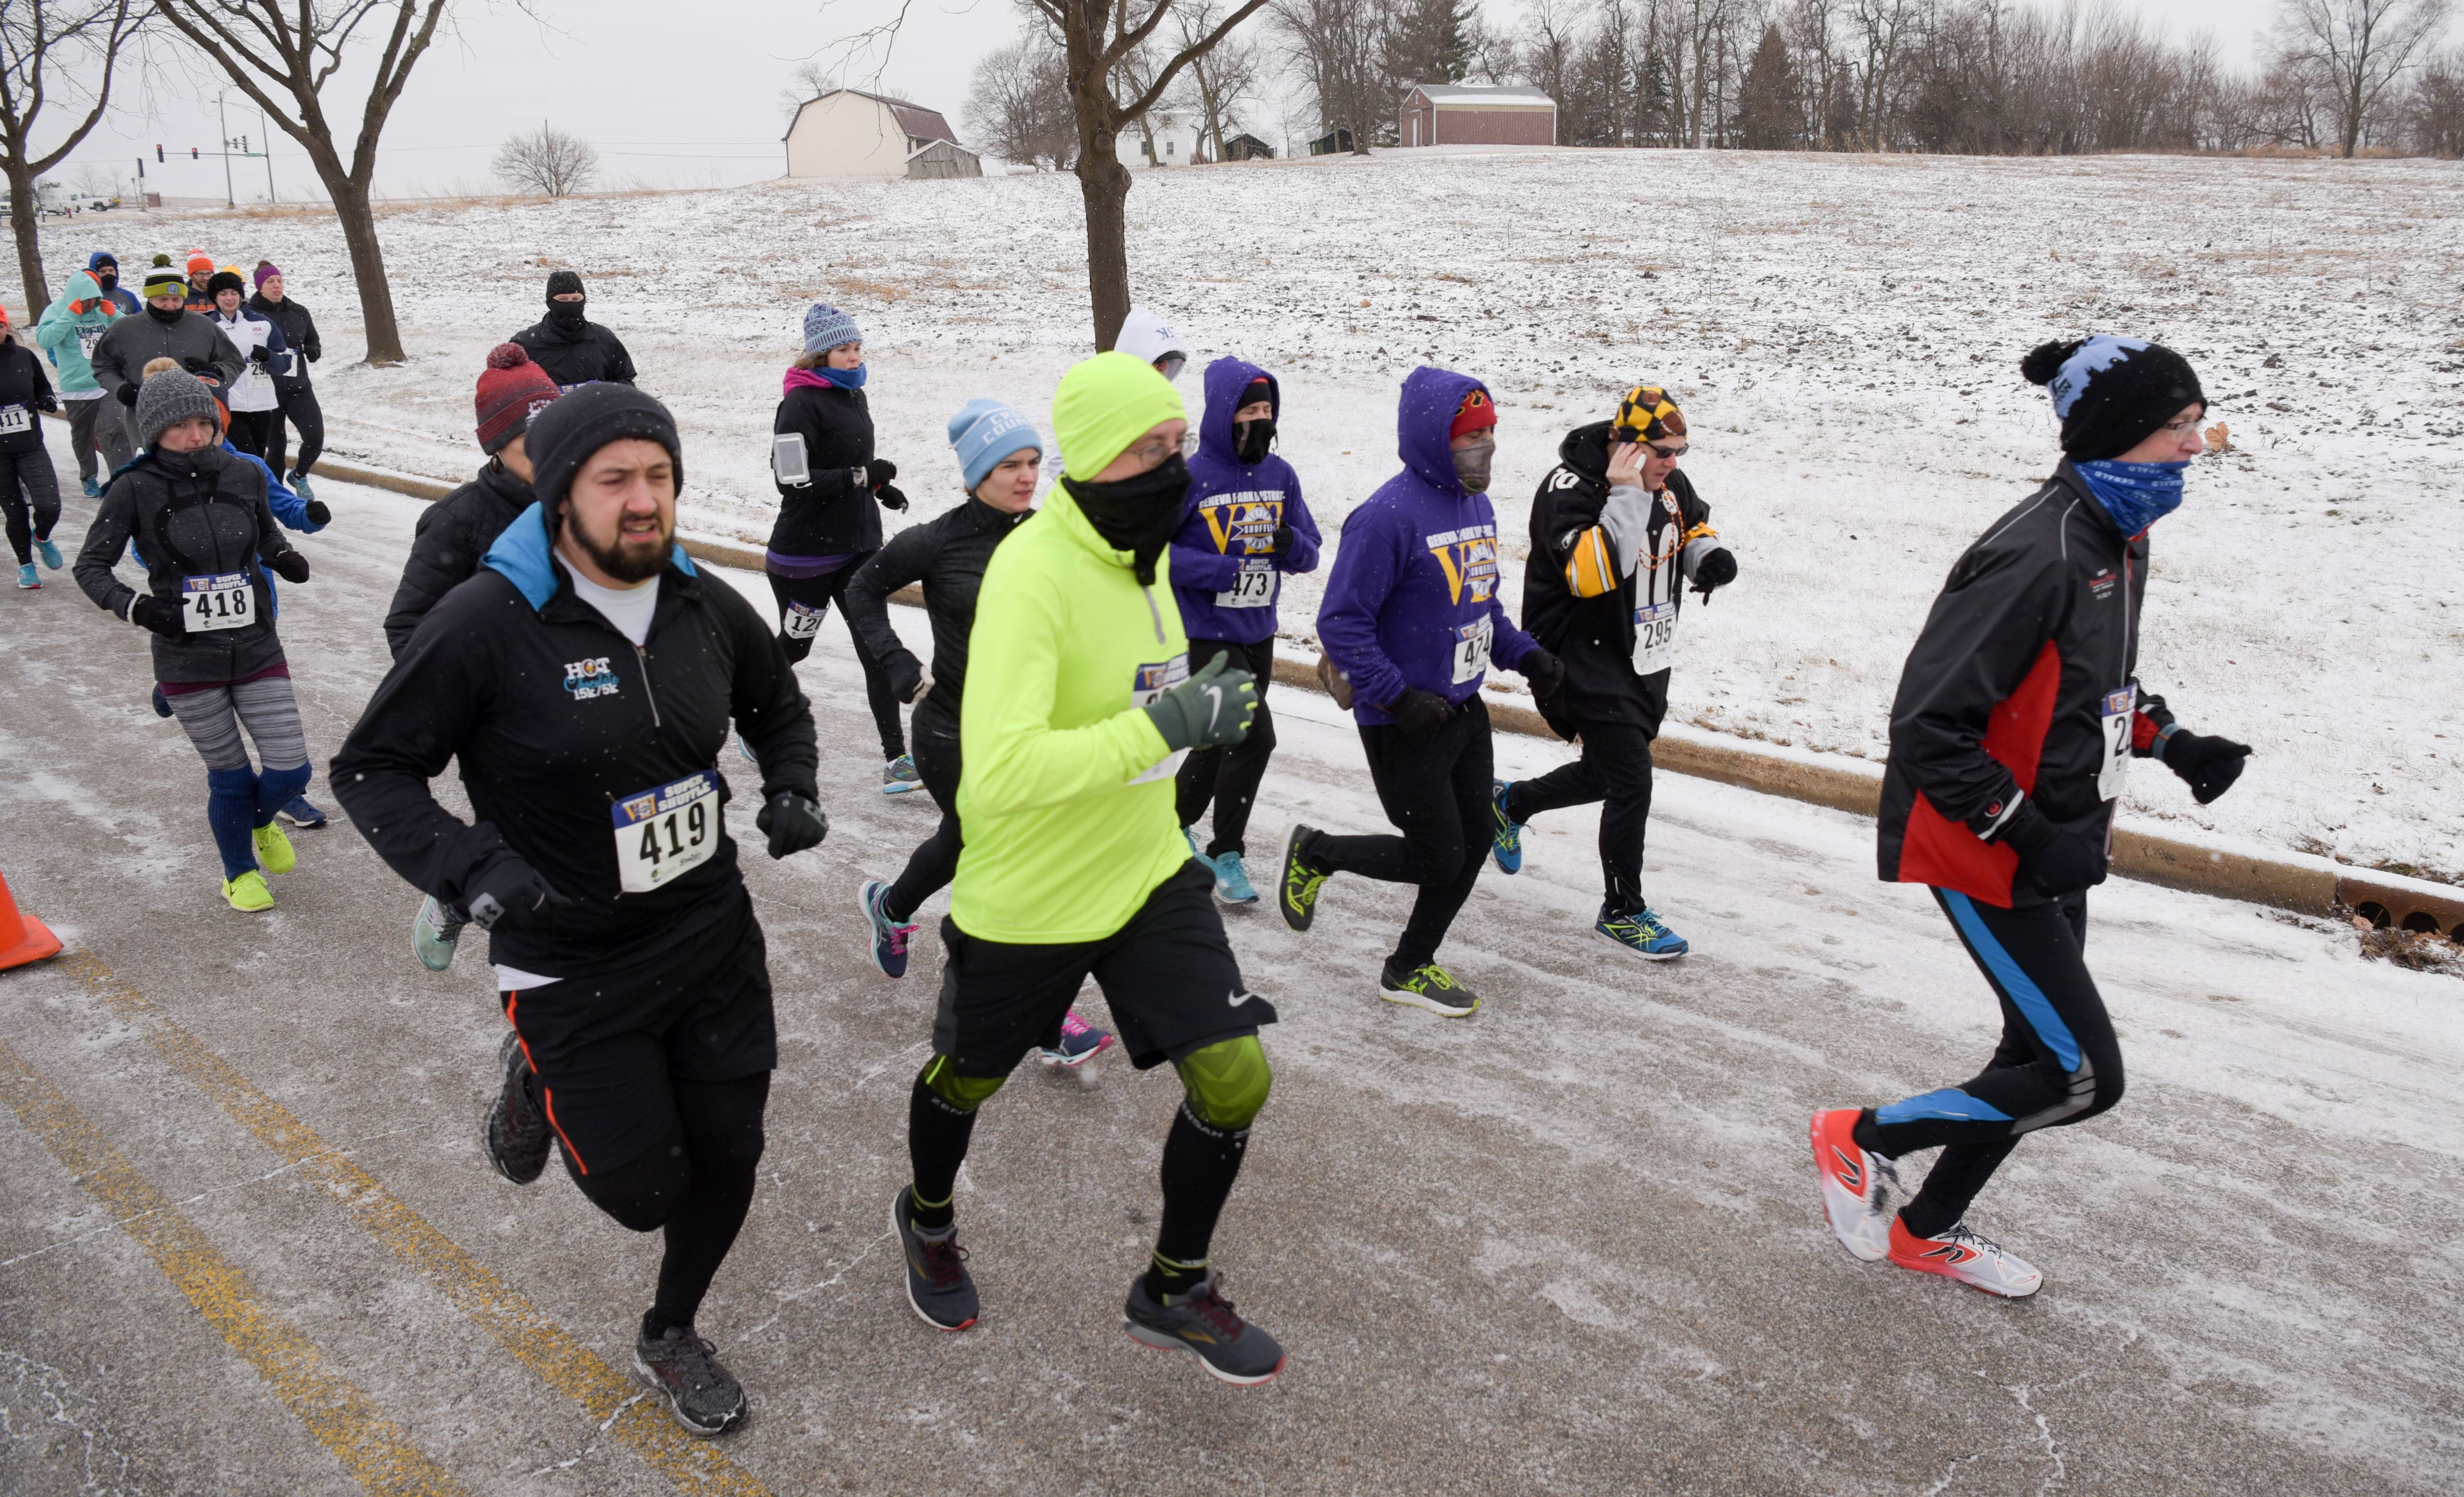 The annual Super Shuffle 5K in Geneva kicked off Sunday morning along Viking Drive in front of the Geneva Middle School with a route along the outer trail of Peck Farm.